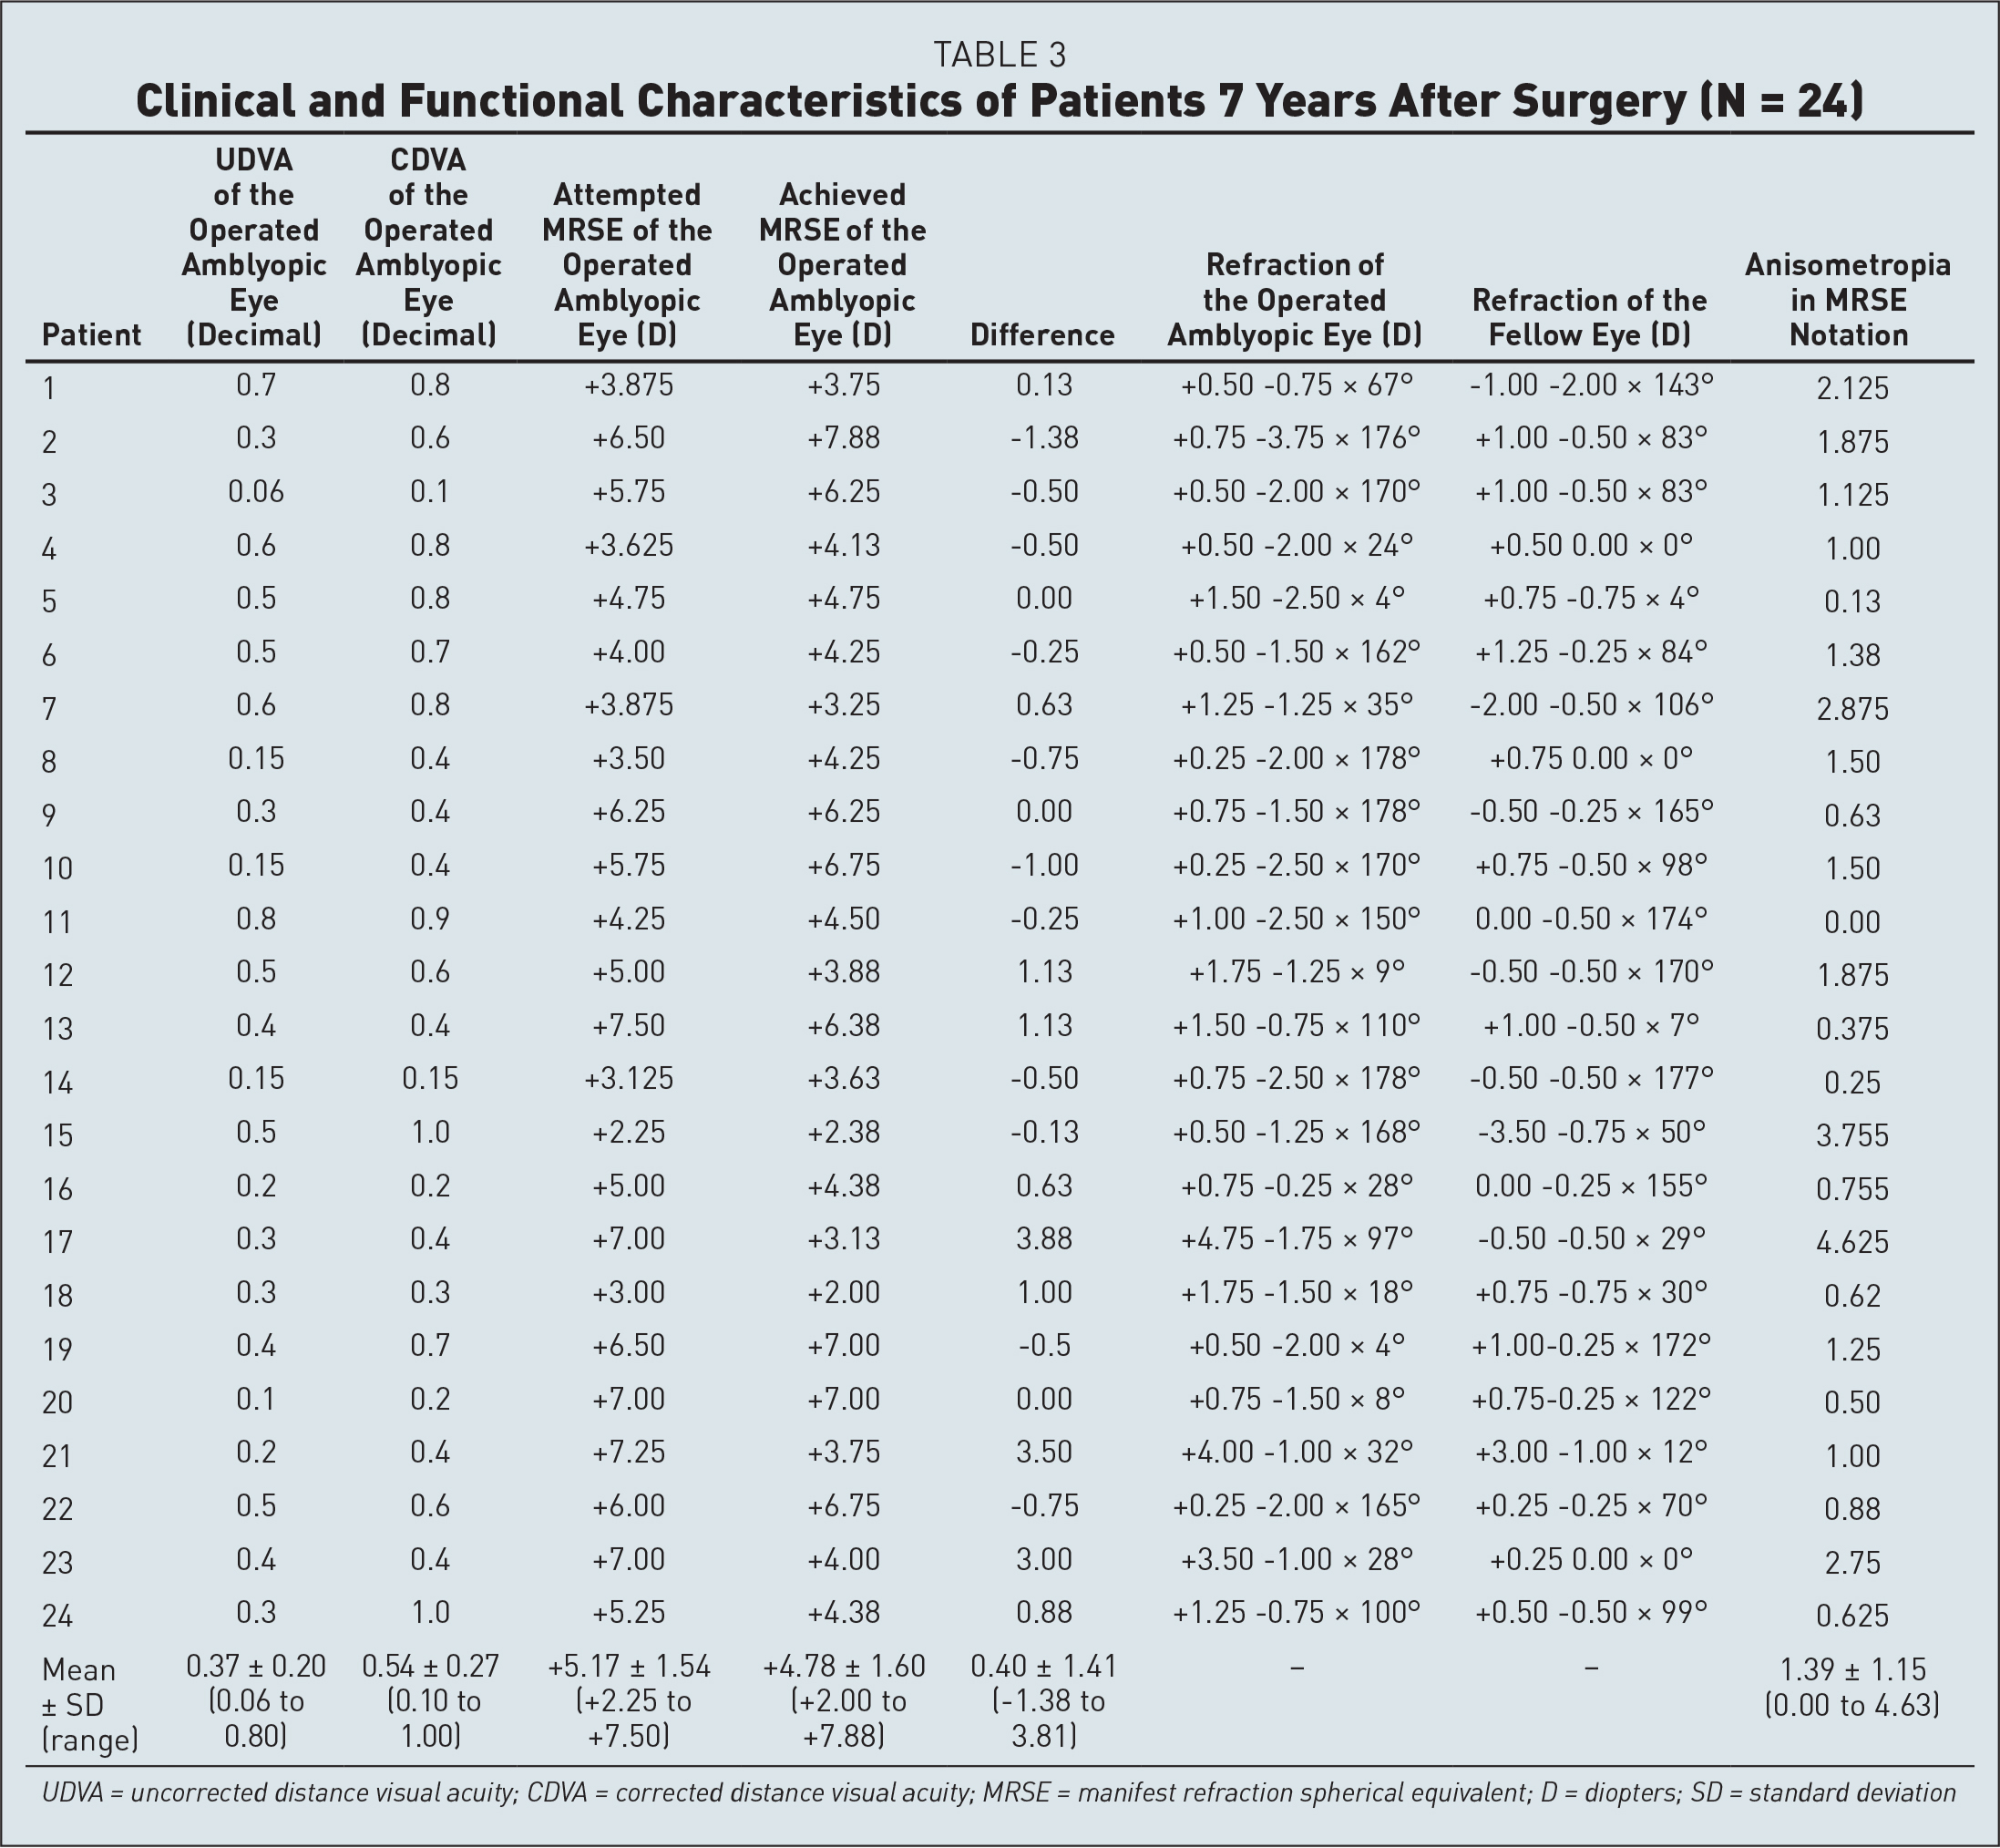 Clinical and Functional Characteristics of Patients 7 Years After Surgery (N = 24)